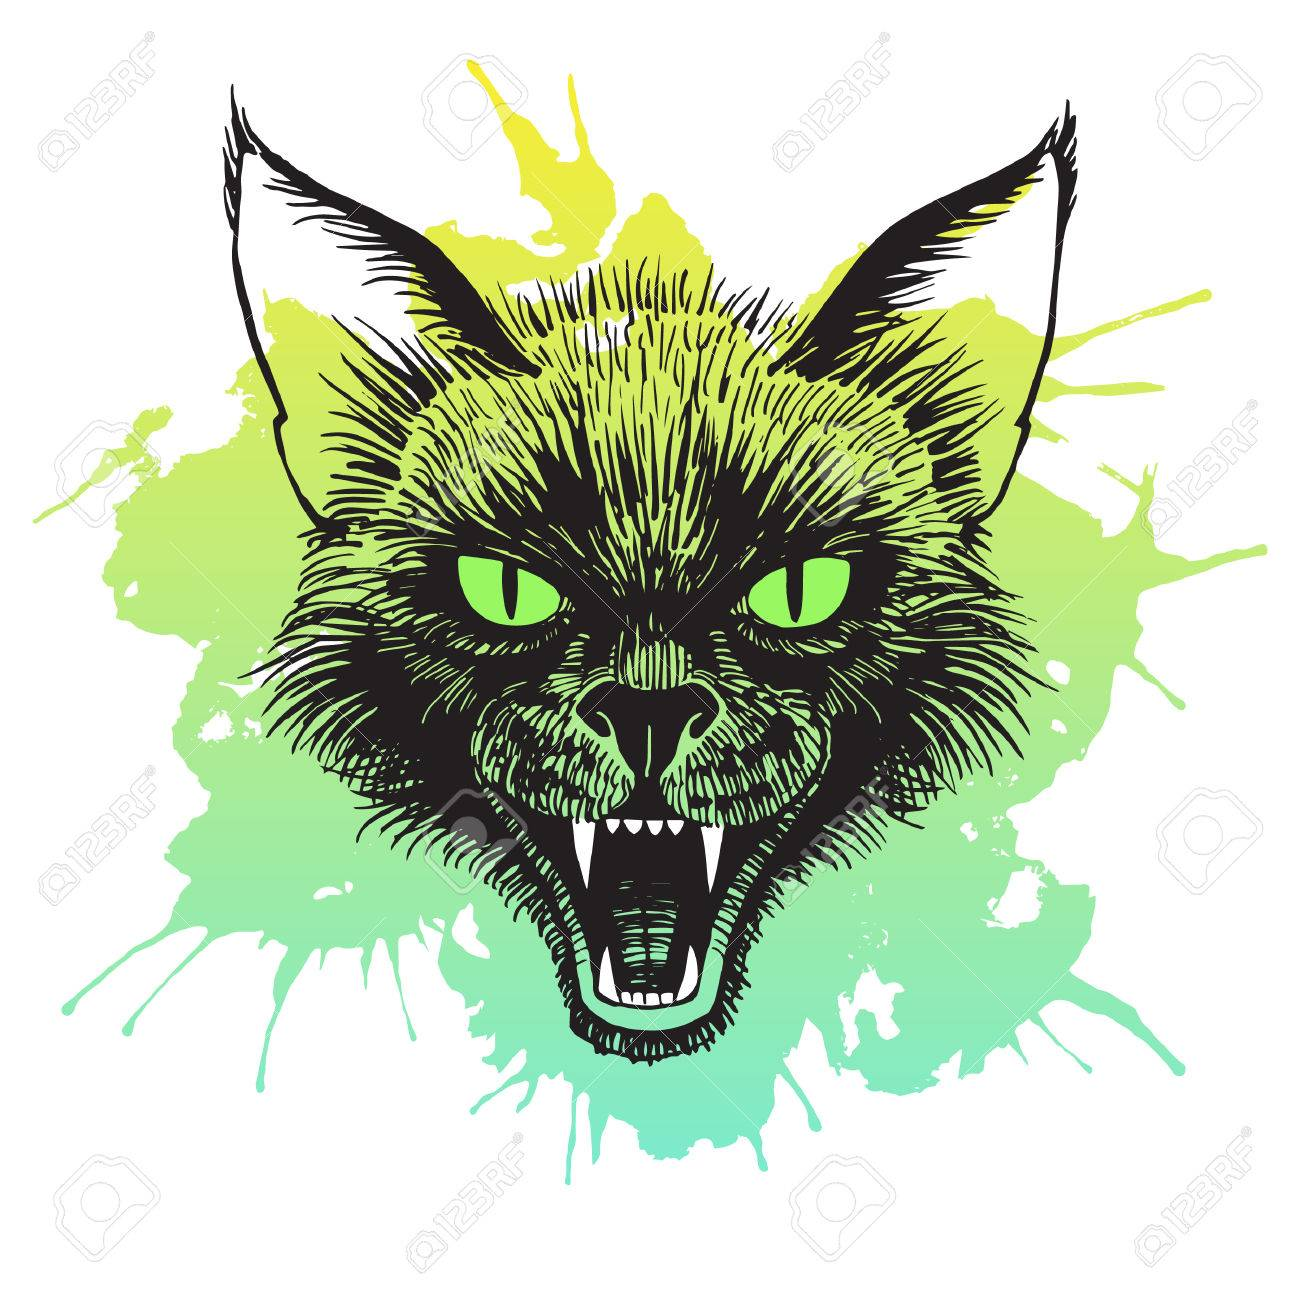 1300x1300 Cat's Head Illustration. Scary Black Cat With Open Mouth